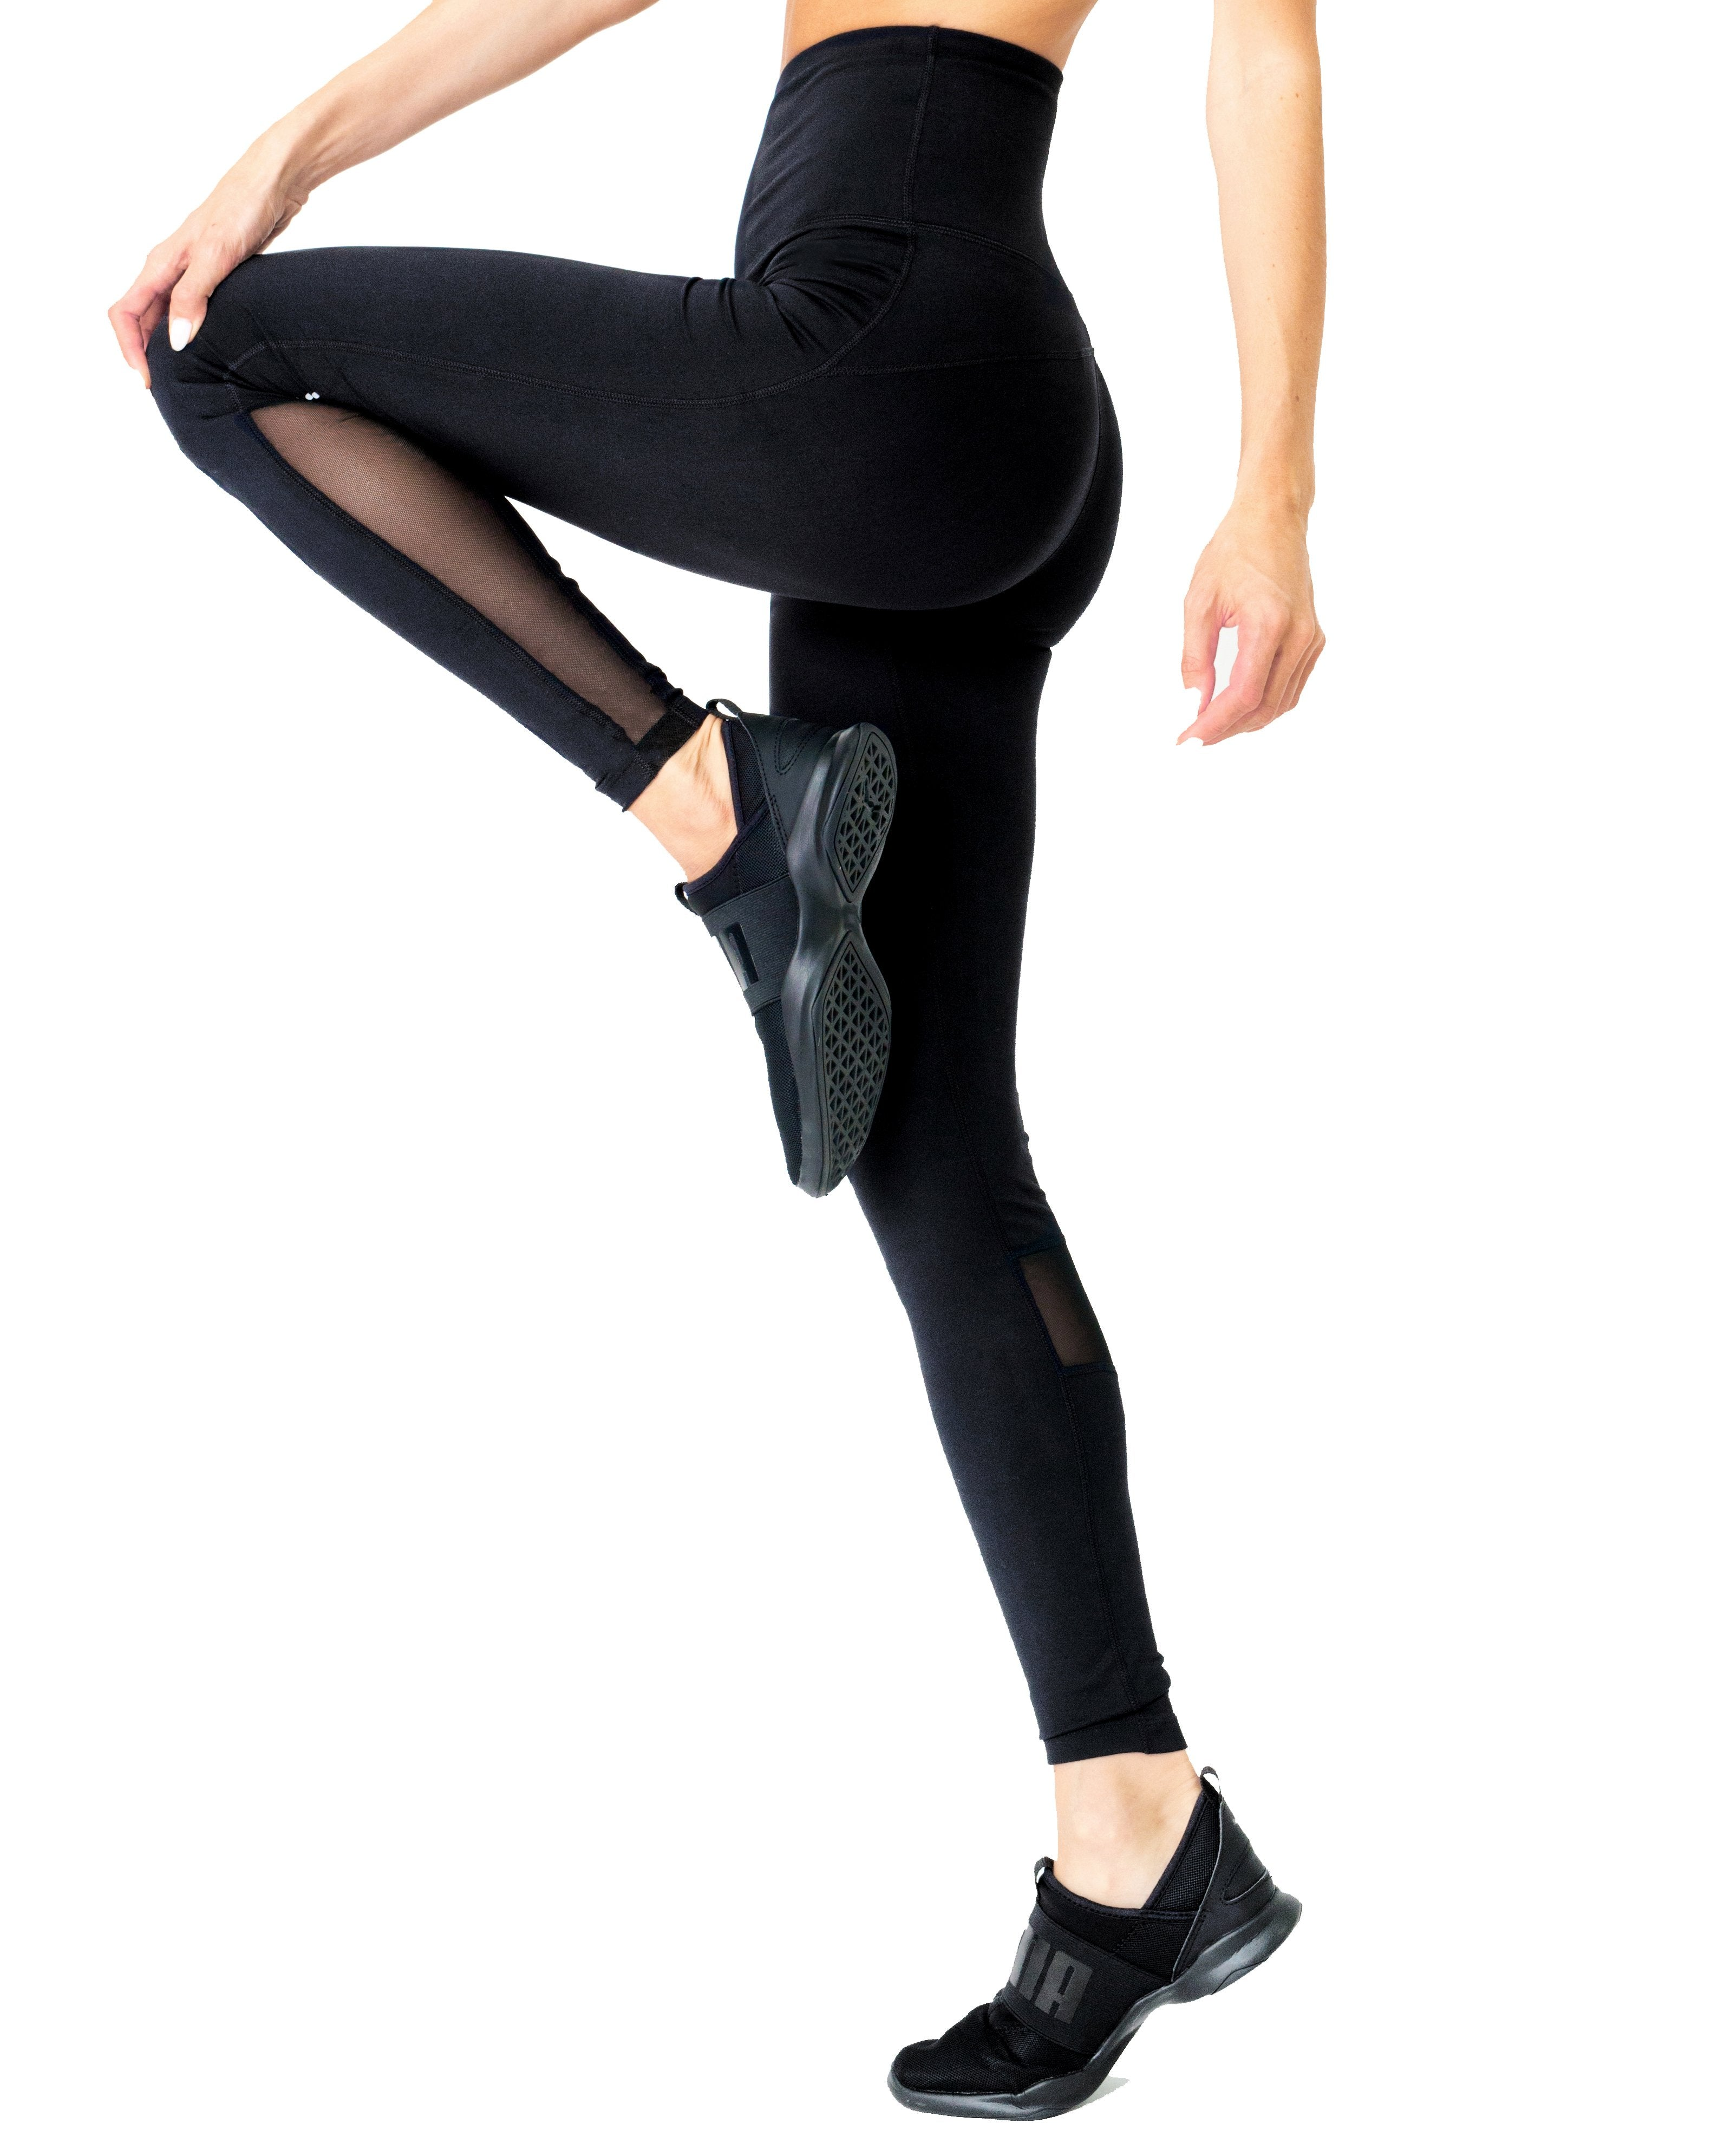 Energique Athletic Leggings With Reflective Strips and Mesh Panels - Zip & Mos